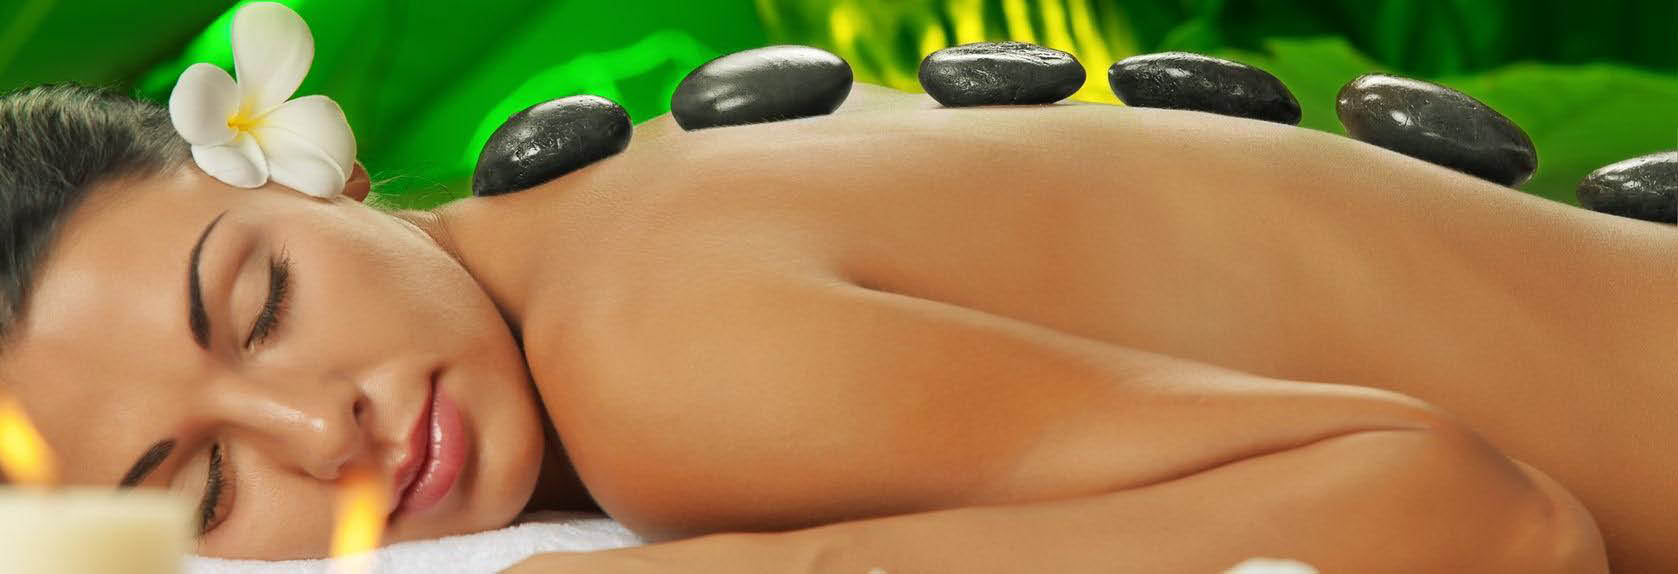 Receive a full body massage at Four Season & Spa located in Dyer, IN.